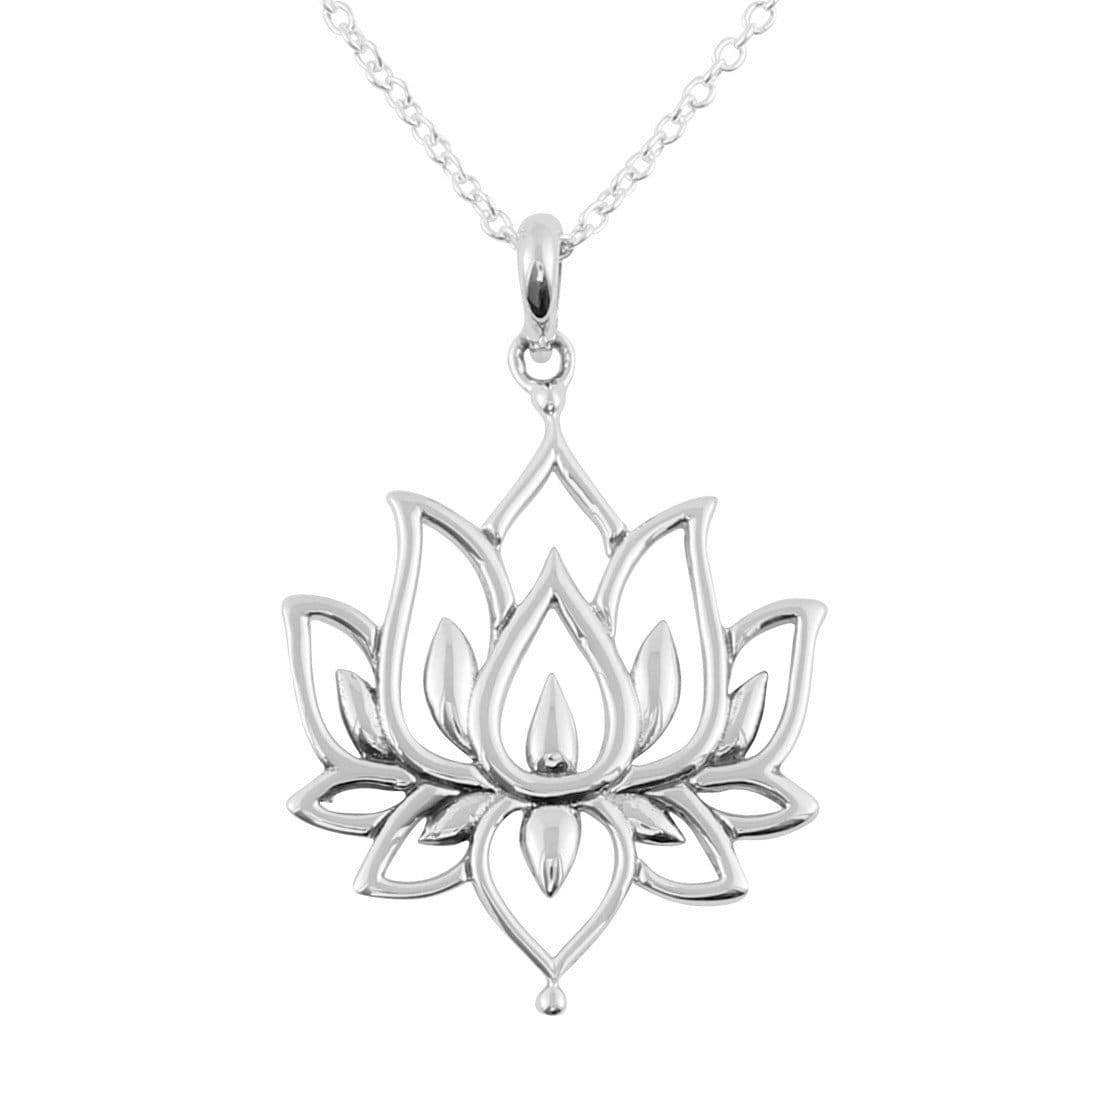 Midsummer Star Necklaces Blossoming Lotus Necklace